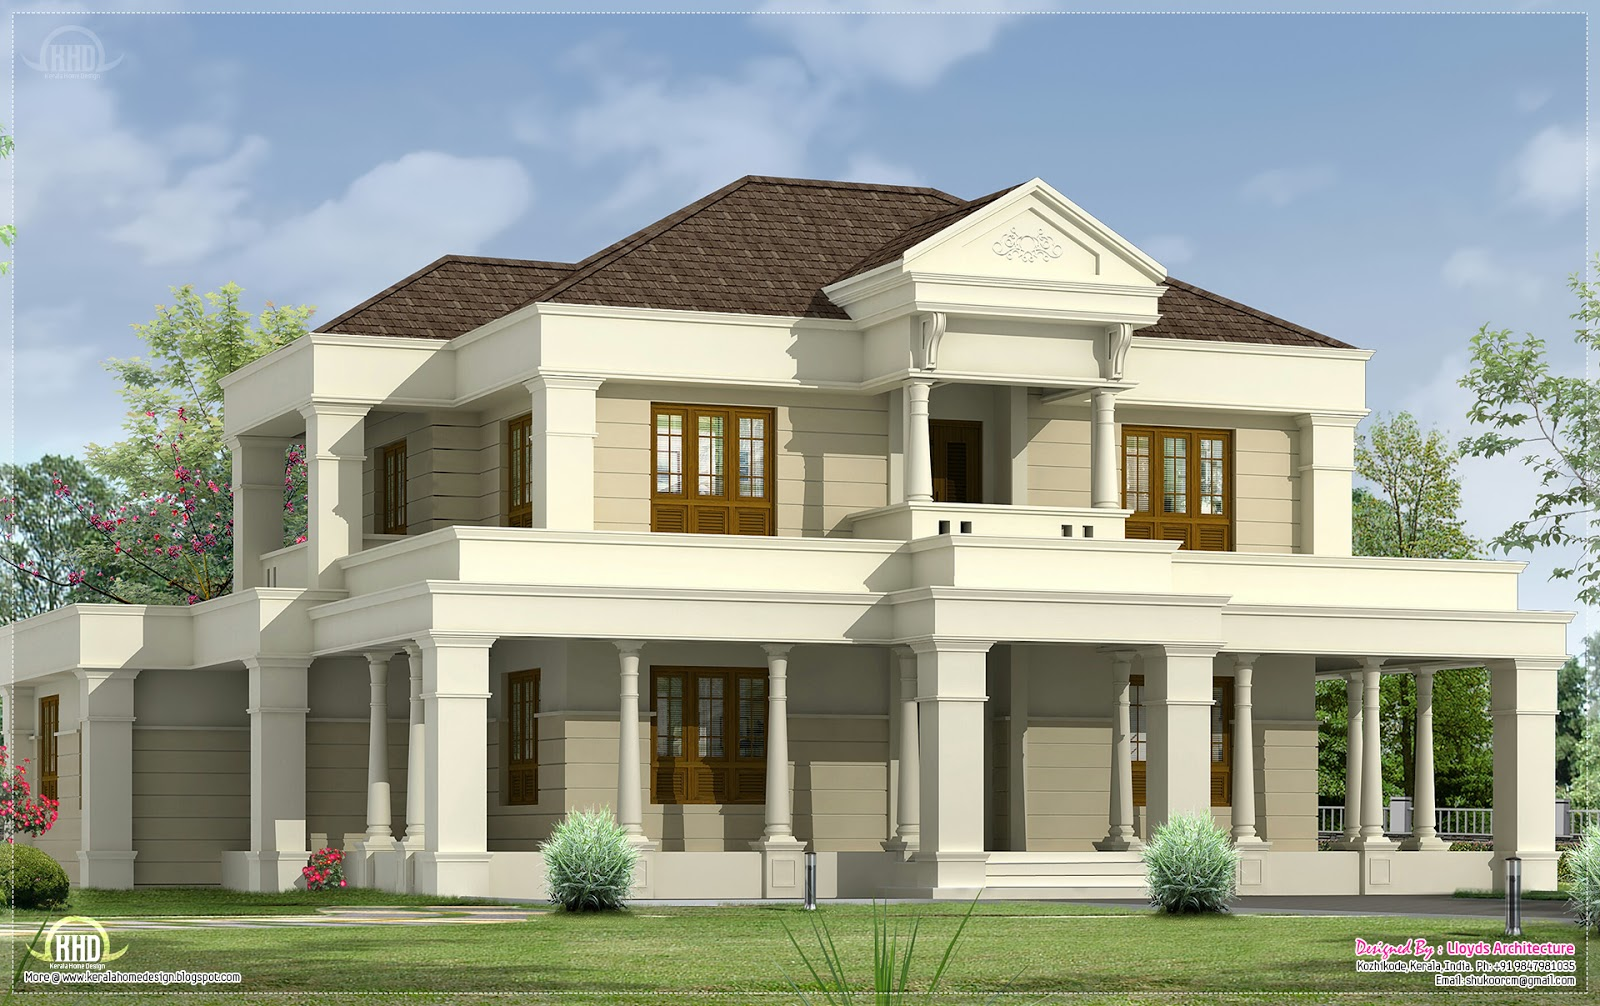 5 Bedroom Luxurious Villa Exterior Design Home Kerala Plans